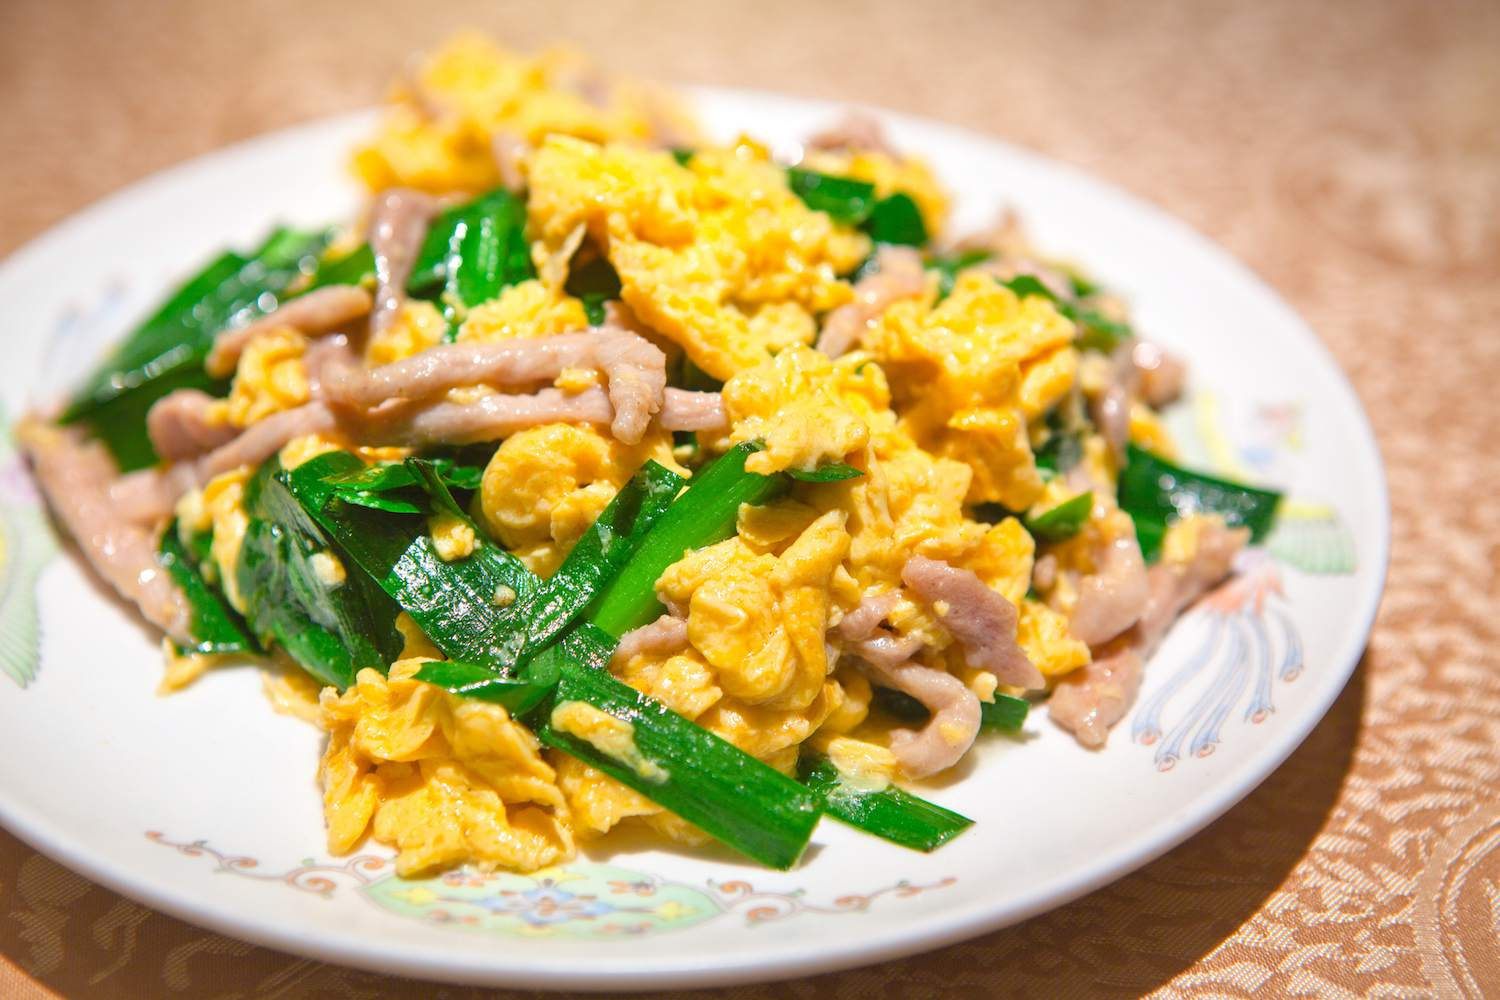 Scrambled Eggs with Chinese Chives and Shredded Pork